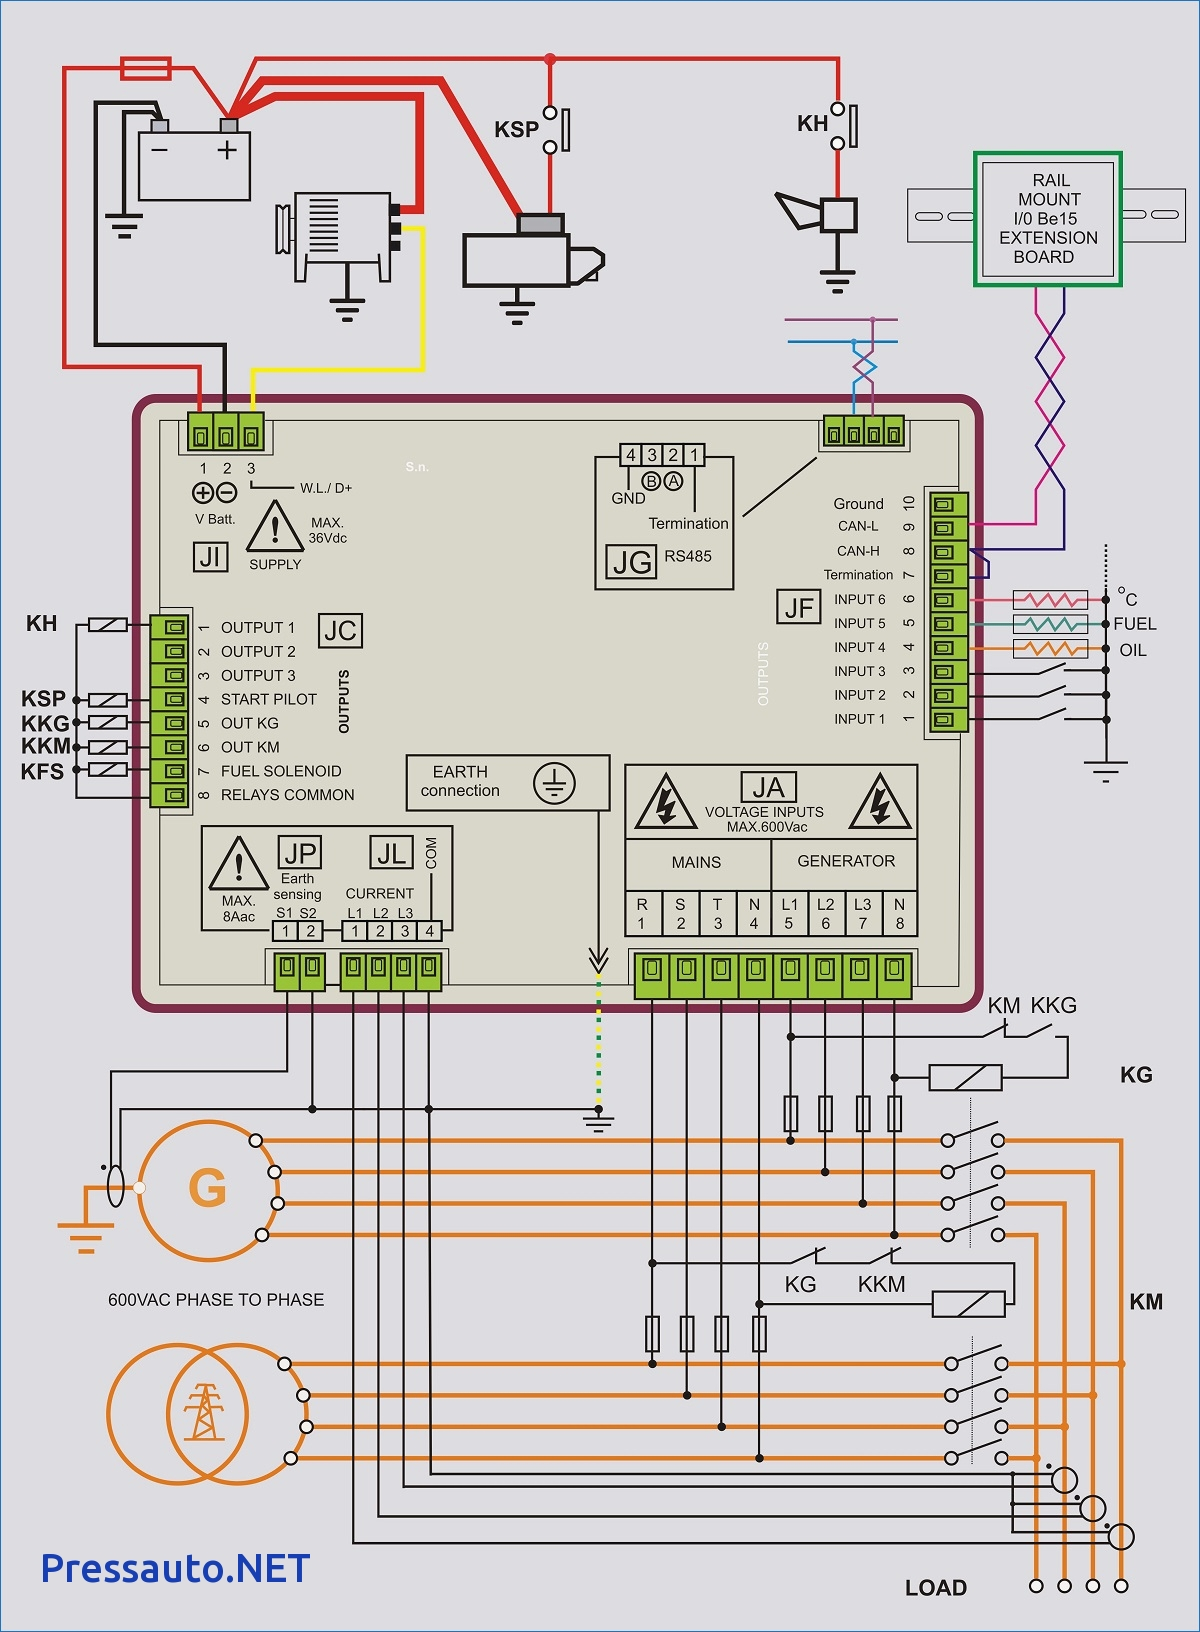 generac transfer switch wiring diagram Download-Automatic Transfer Switch Wiring Di 16-e